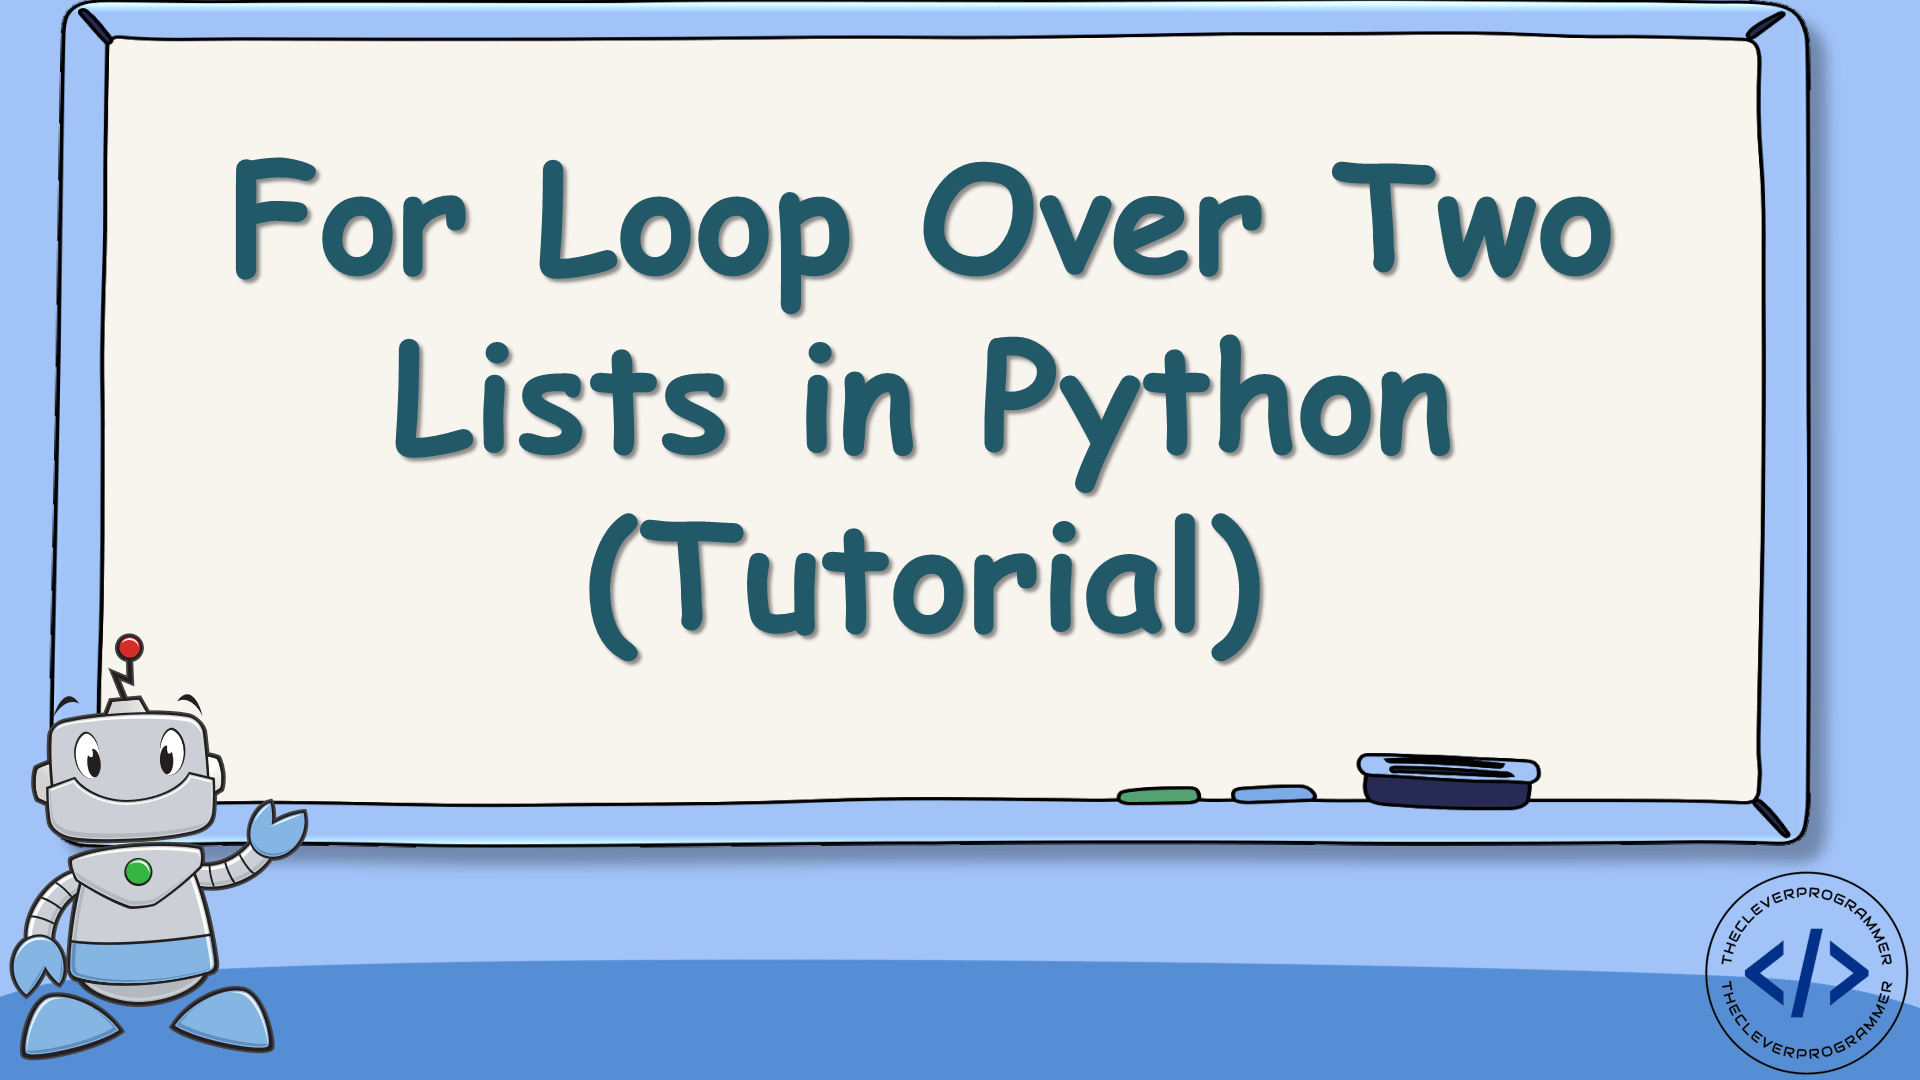 For Loop Over Two Lists in Python